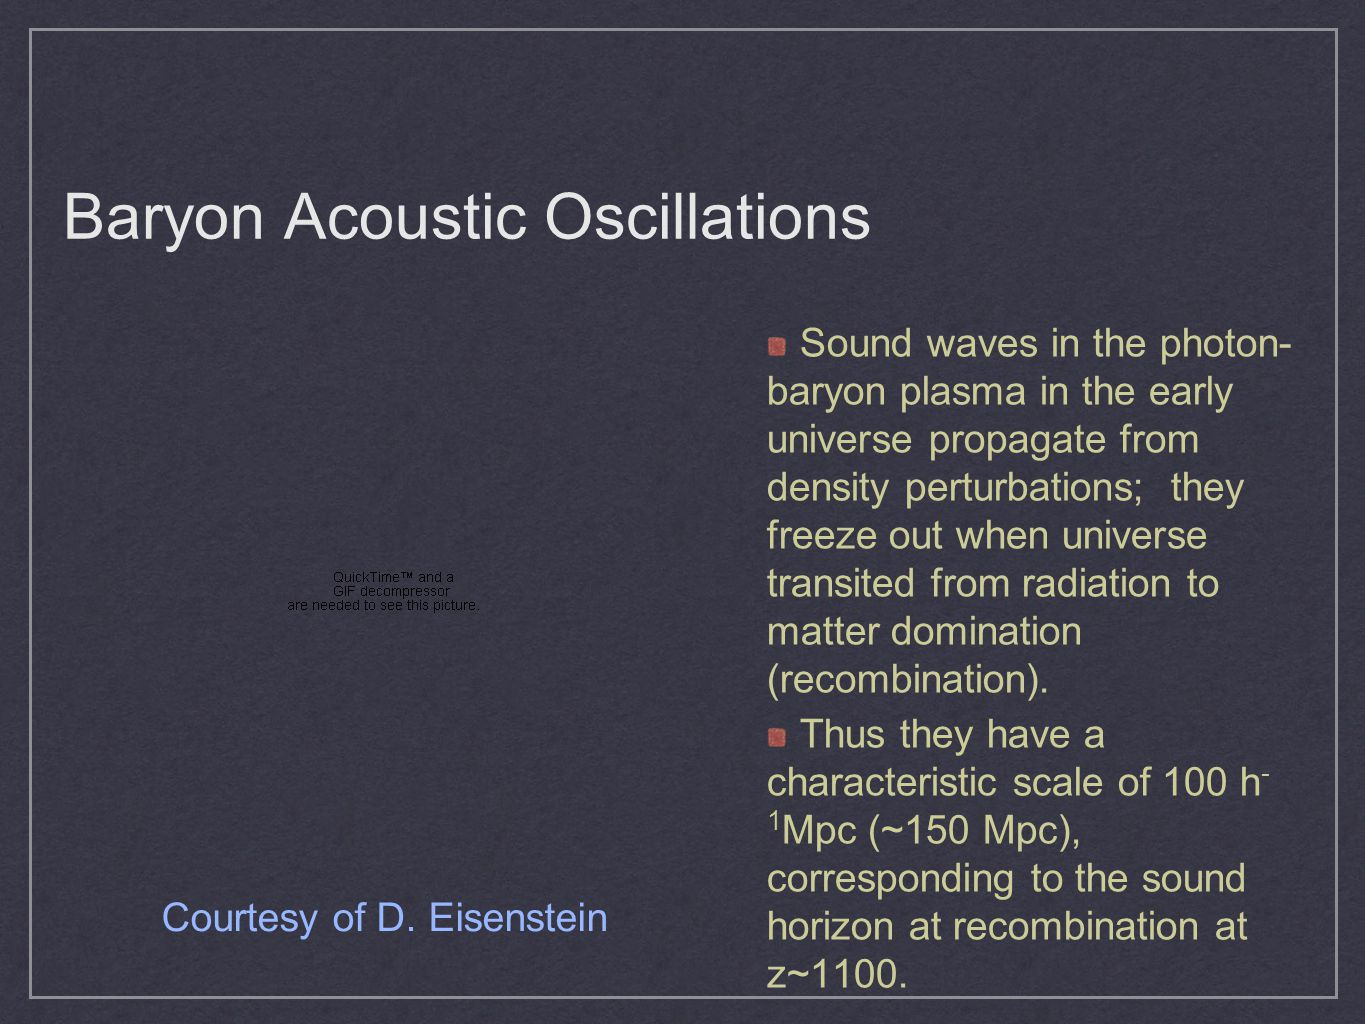 Baryon Acoustic Oscillations Sound waves in the photon- baryon plasma in the early universe propagate from density perturbations; they freeze out when